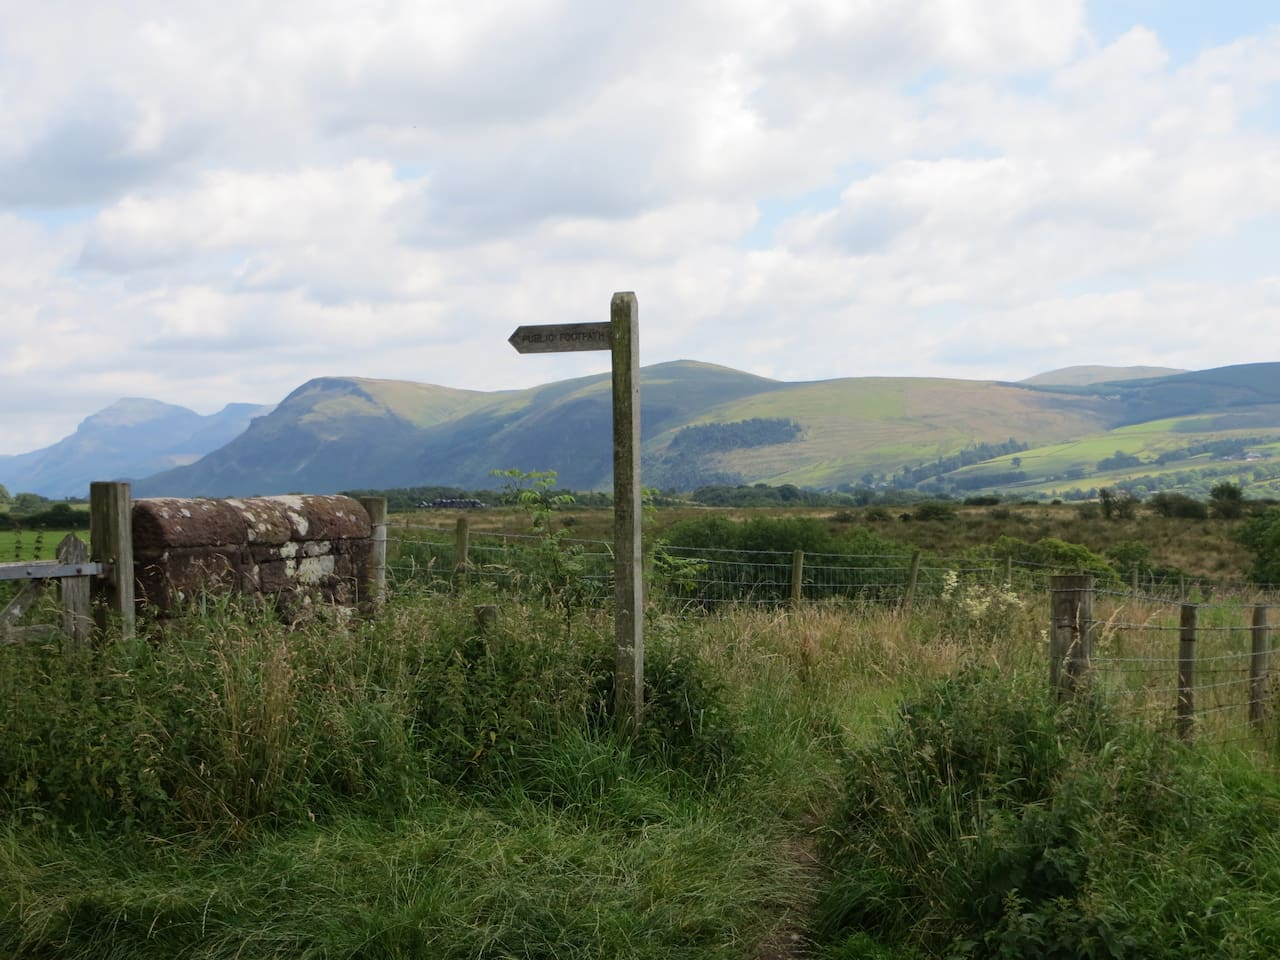 Towards Ennerdale valley from the house